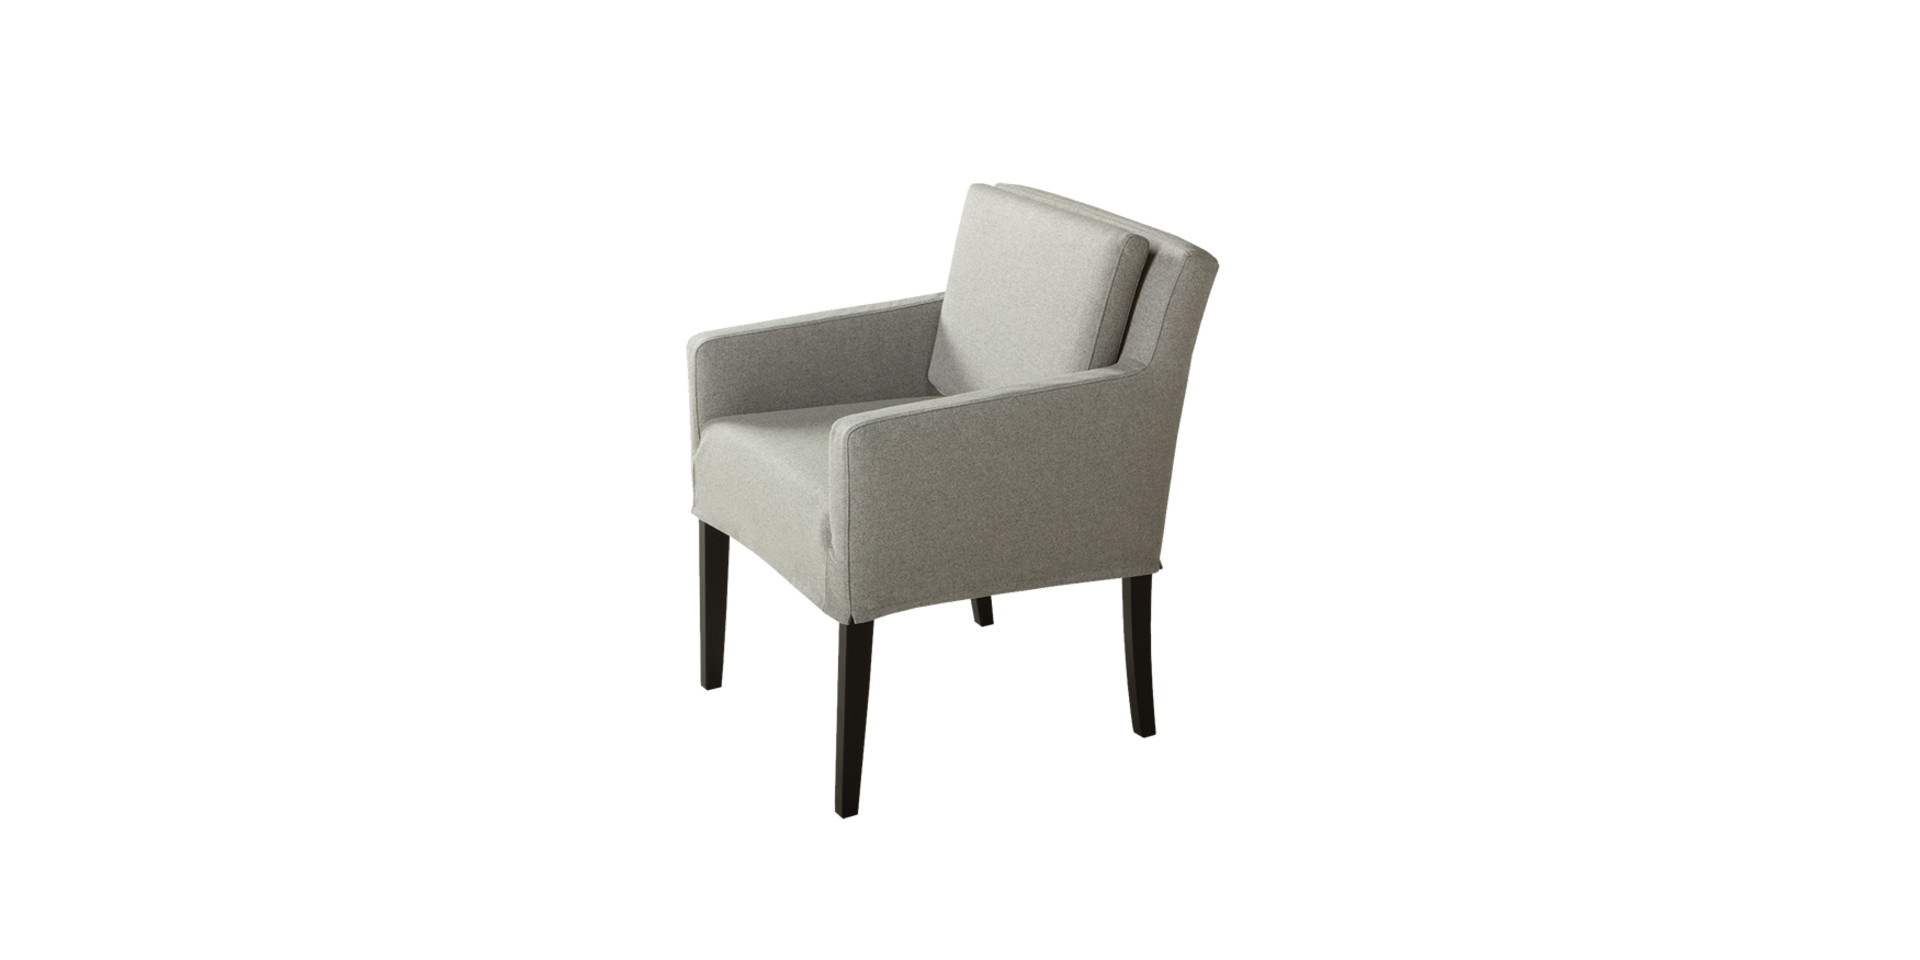 sits-venezia-fauteuil-chair_panno1000_light_grey_3